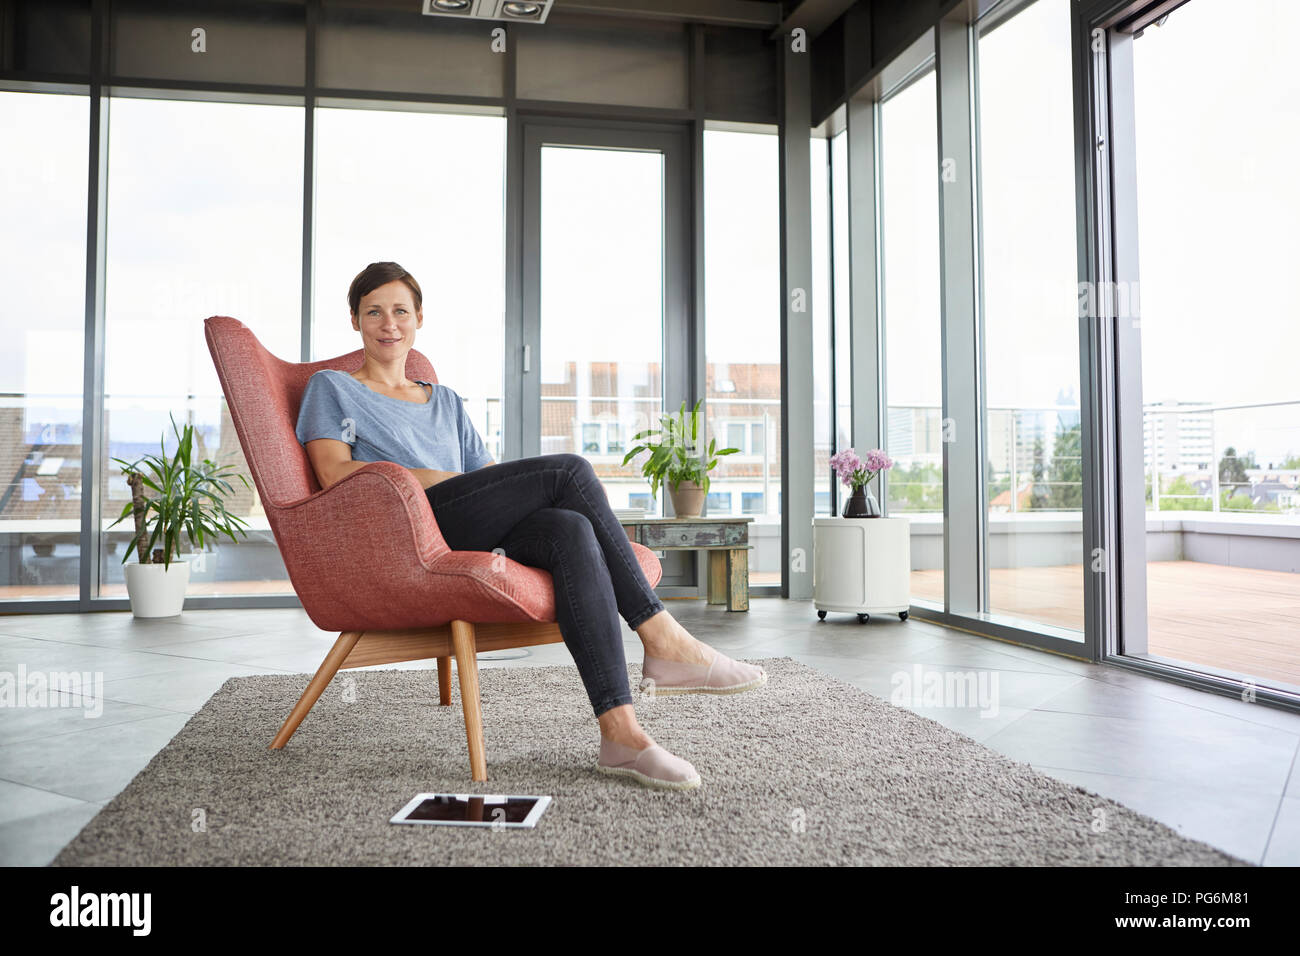 Portrait of woman sitting in armchair at home with tablet beside her - Stock Image